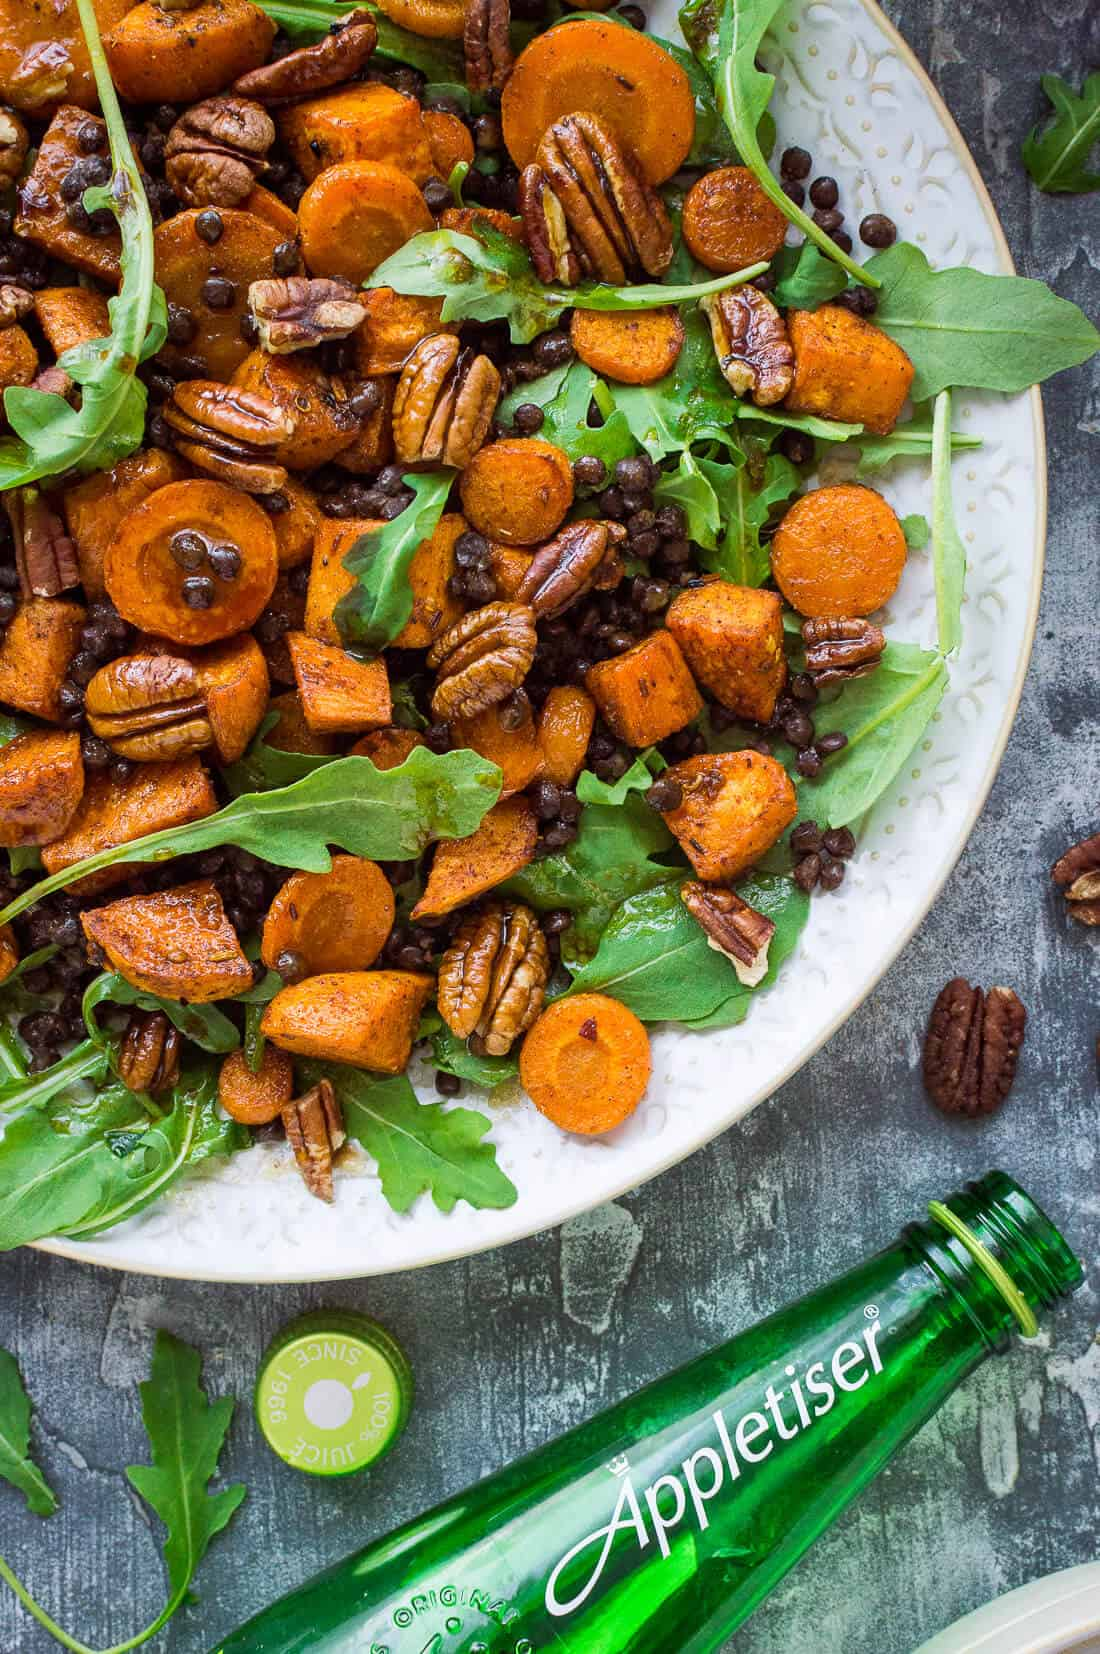 A close up of a plate of roasted sweet potato, lentil and rocket salad with a bottle of Appletiser